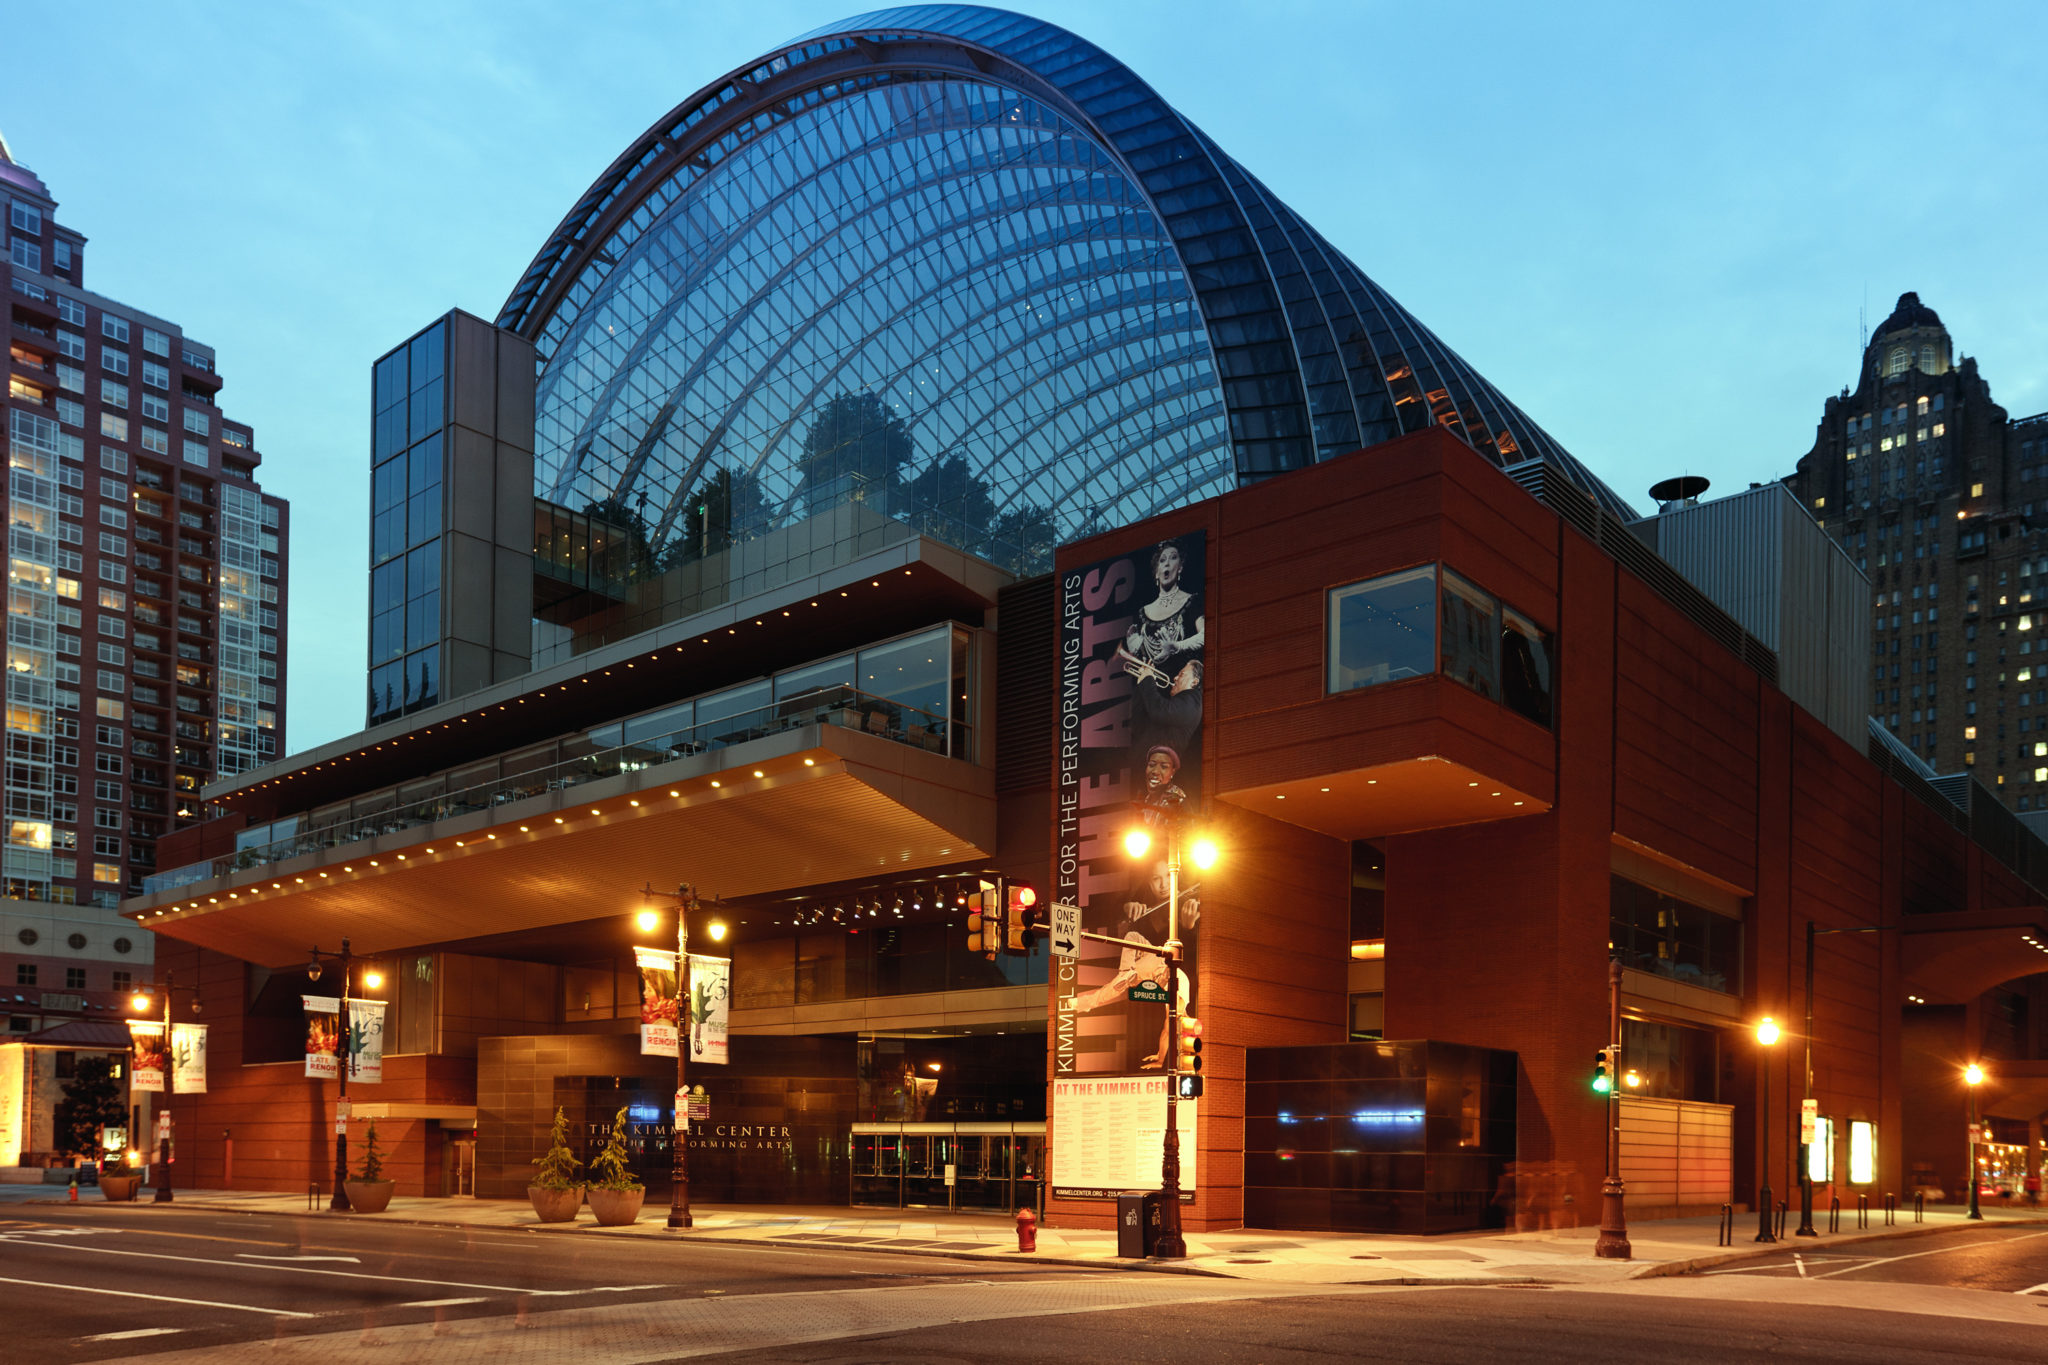 Kimmel Center for the Performing Arts photo by Paul Loftland for PHLCVB